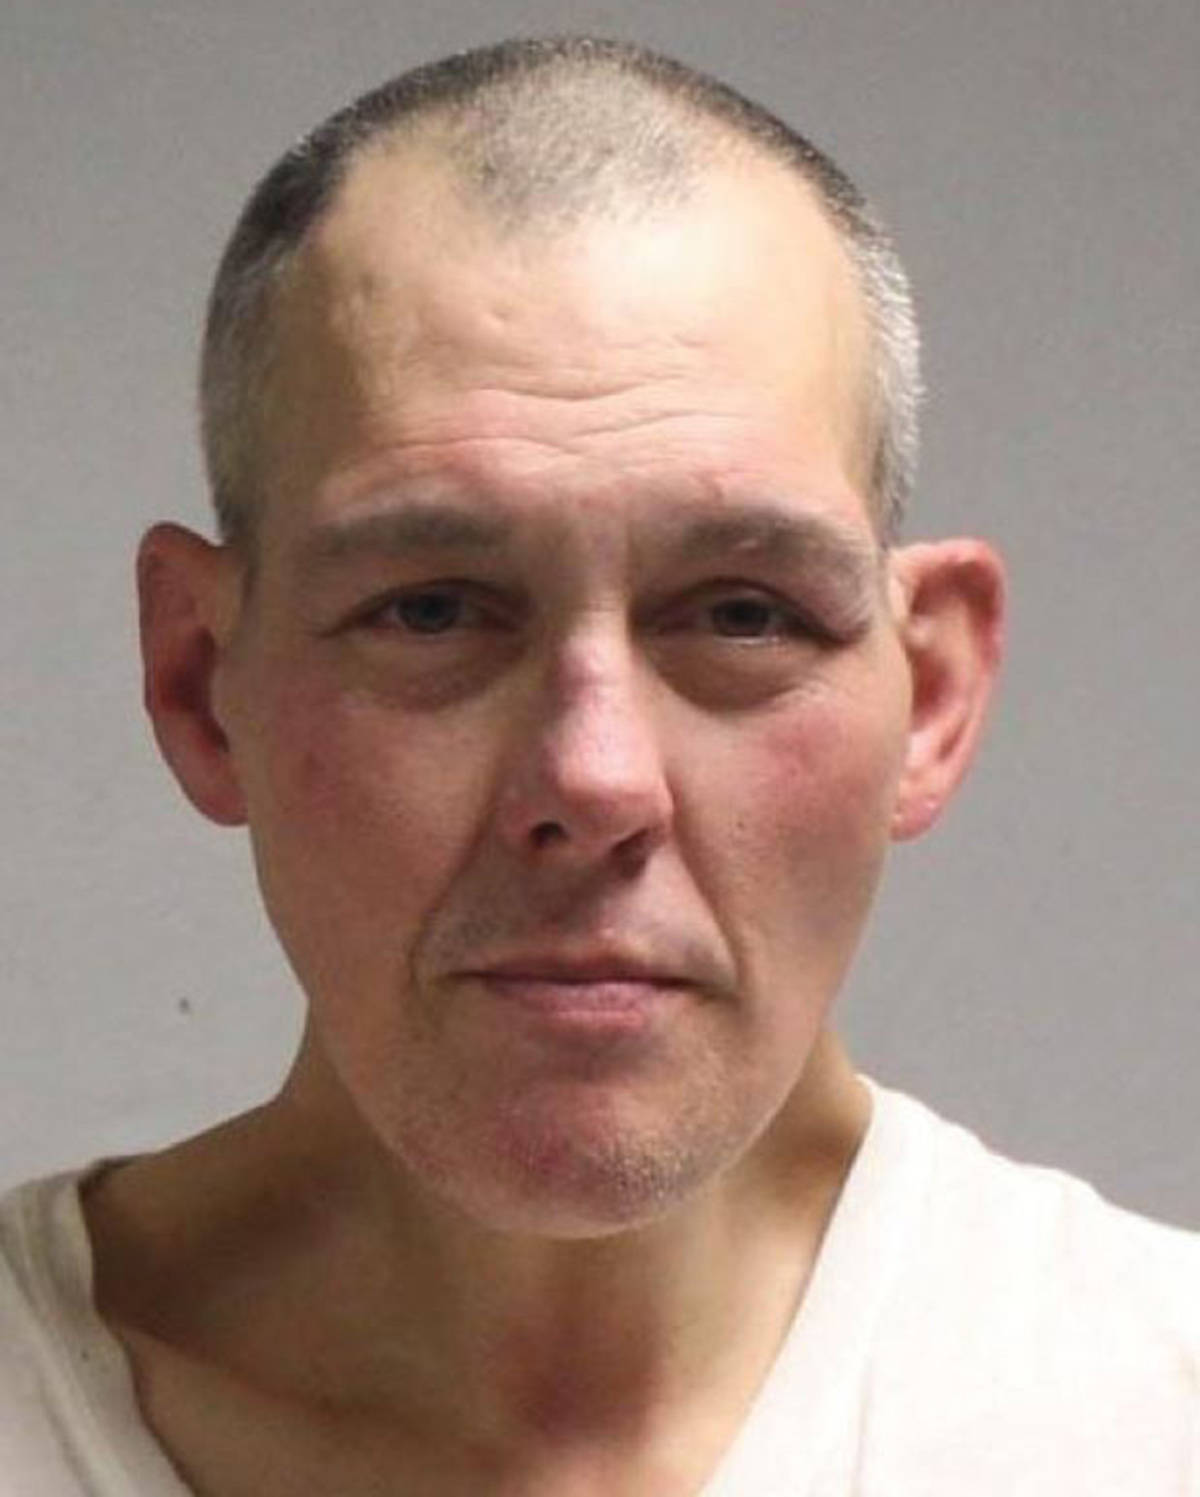 Yves Castonguay, 47, is wanted on hate crime and mischief charges in connection to vandalism at the Chinese Cultural Centre in April 2020. (Vancouver Police Department)